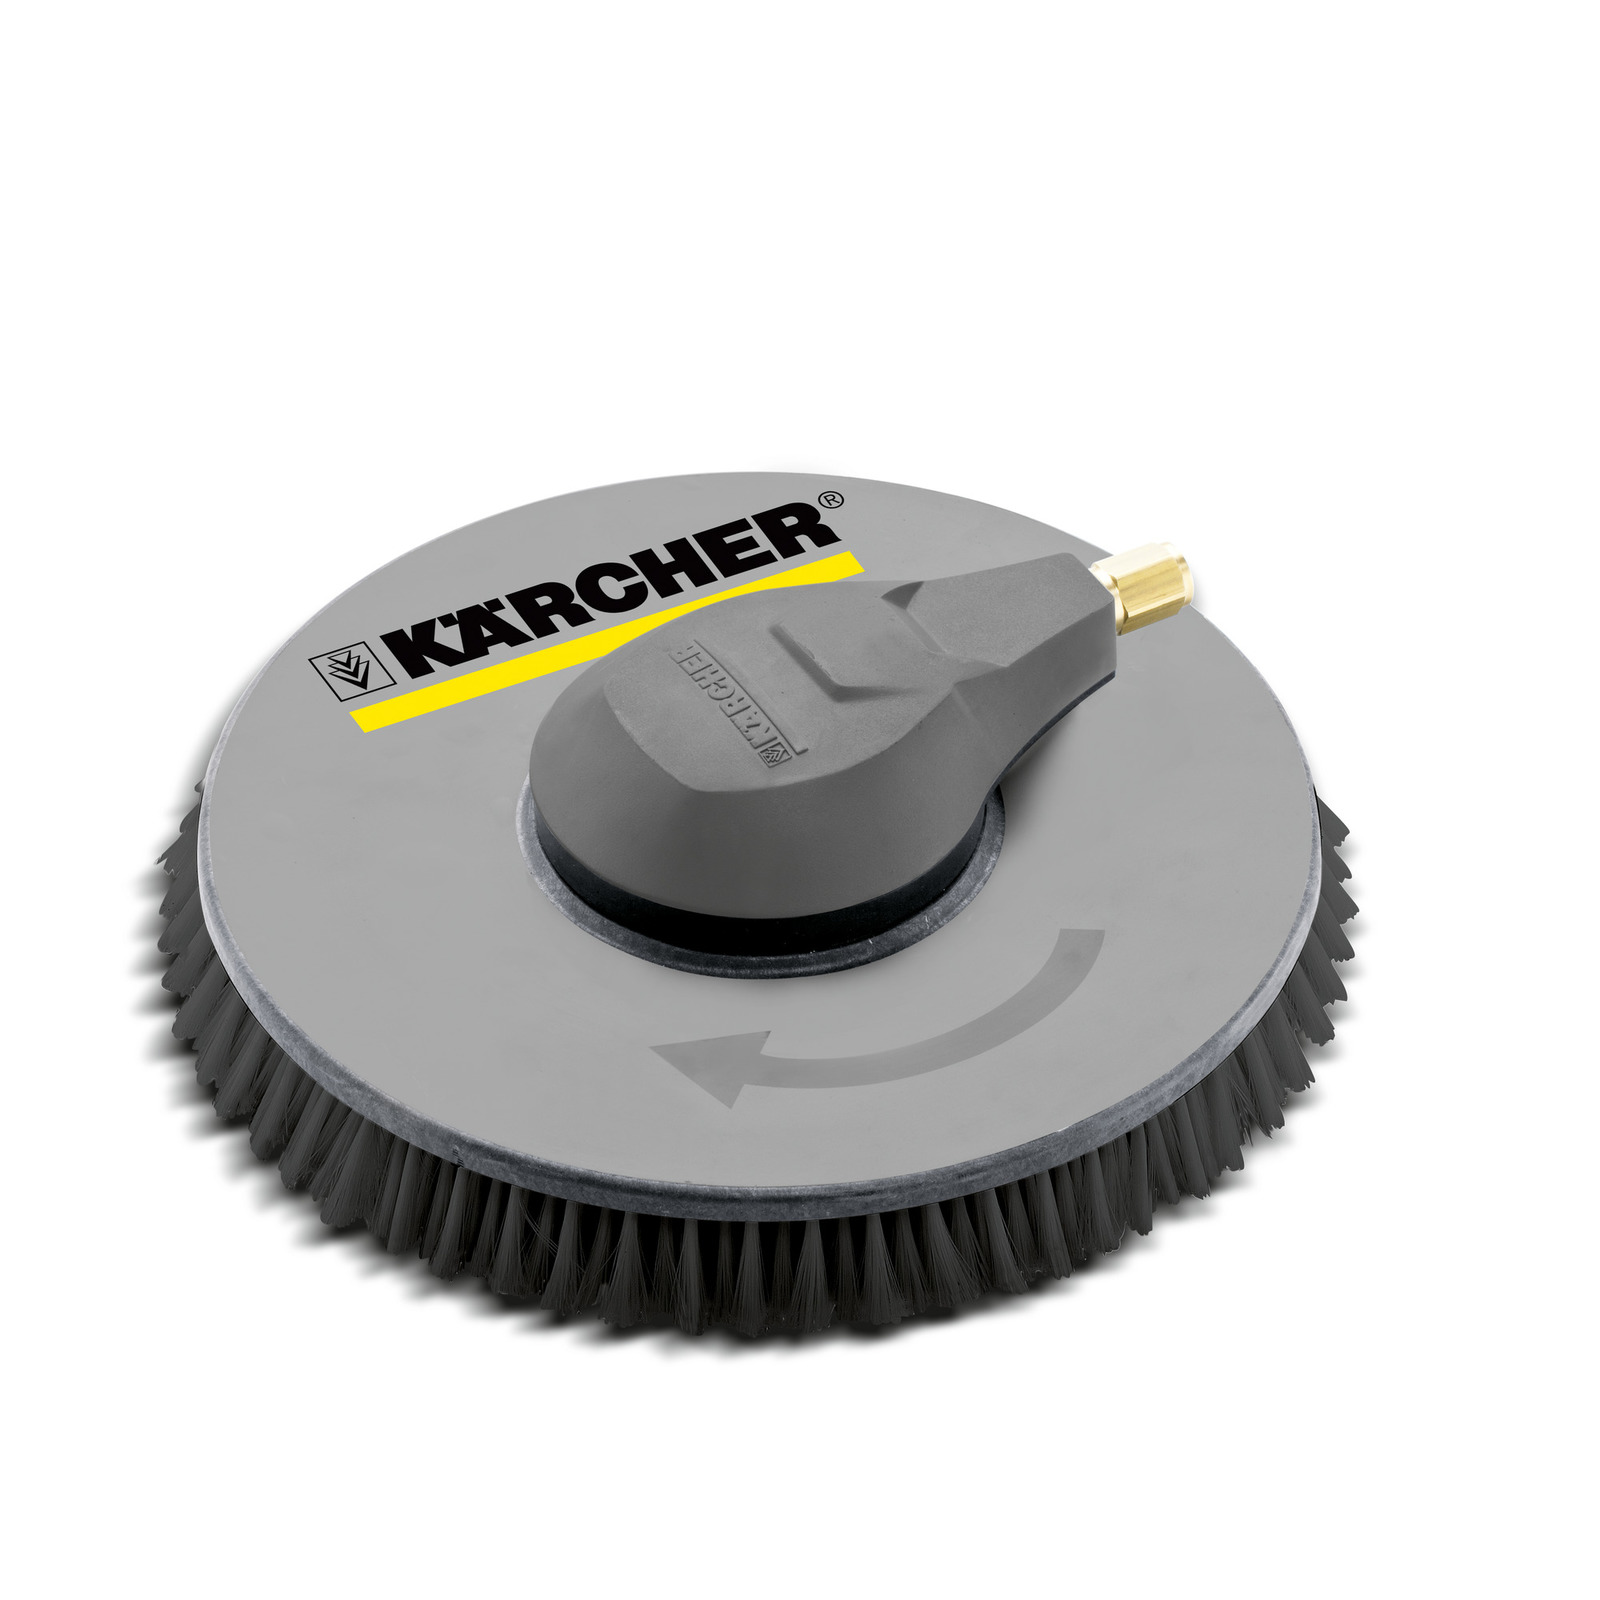 Karcher Pressure Cleaner Accessories- Solar Panel Cleaner i Solar 400